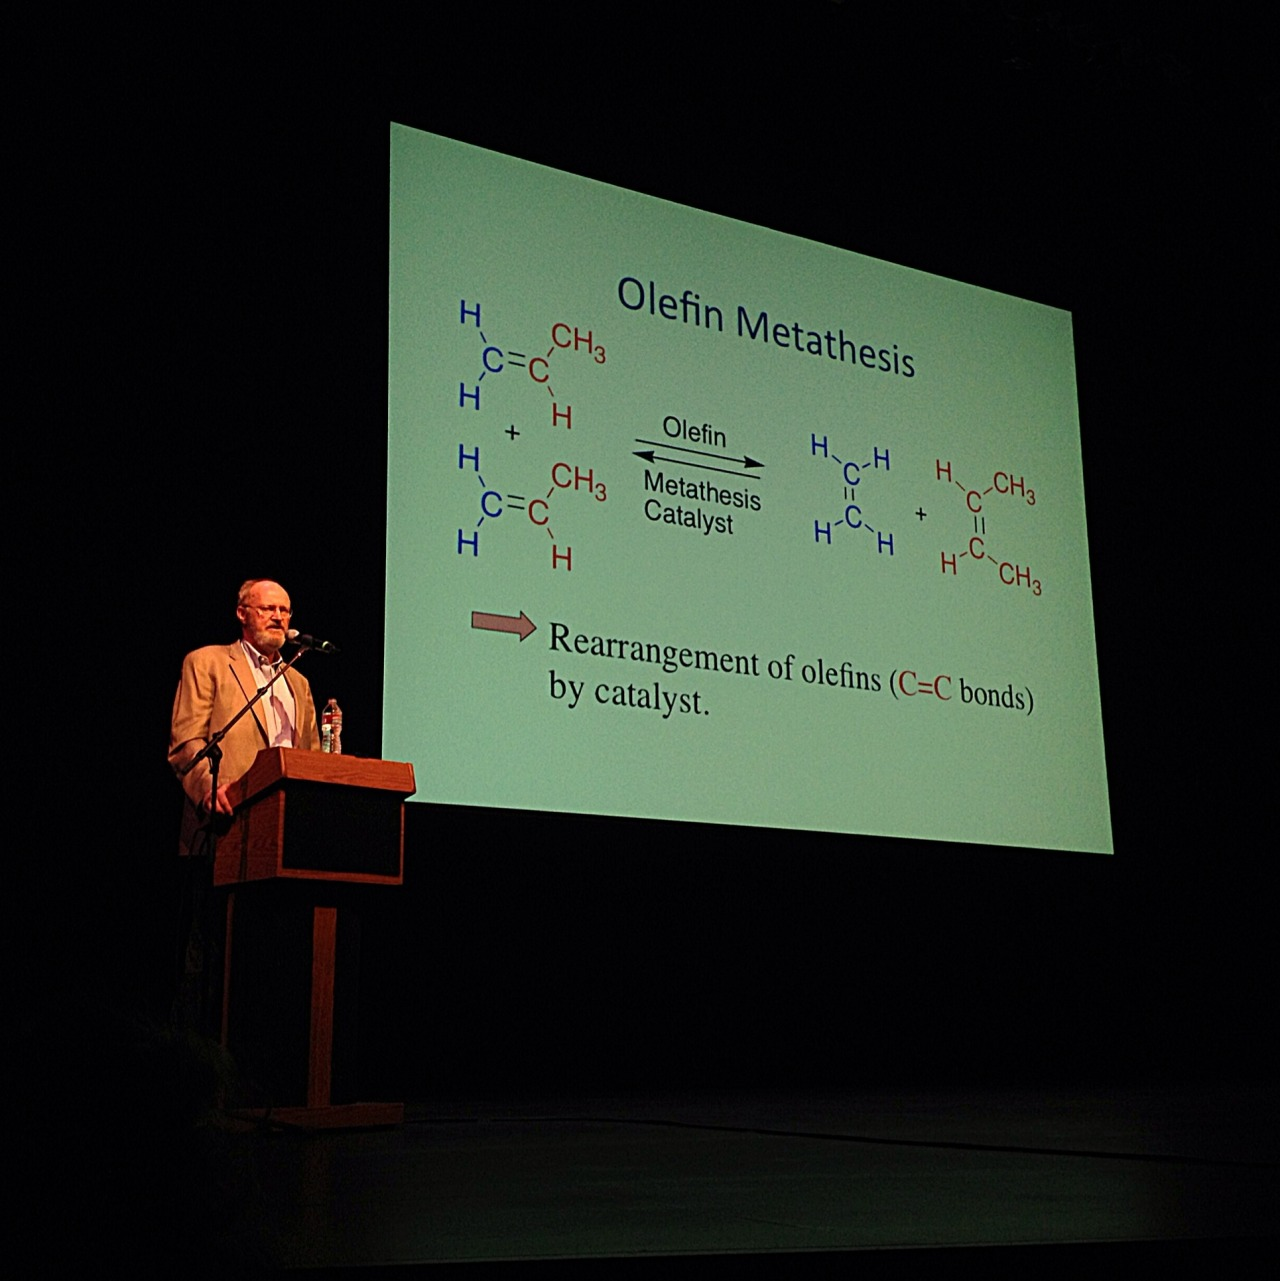 Just got to see 2005 Nobel Prize winning chemist Dr. Robert Grubbs give a talk on Olefin Metathesis